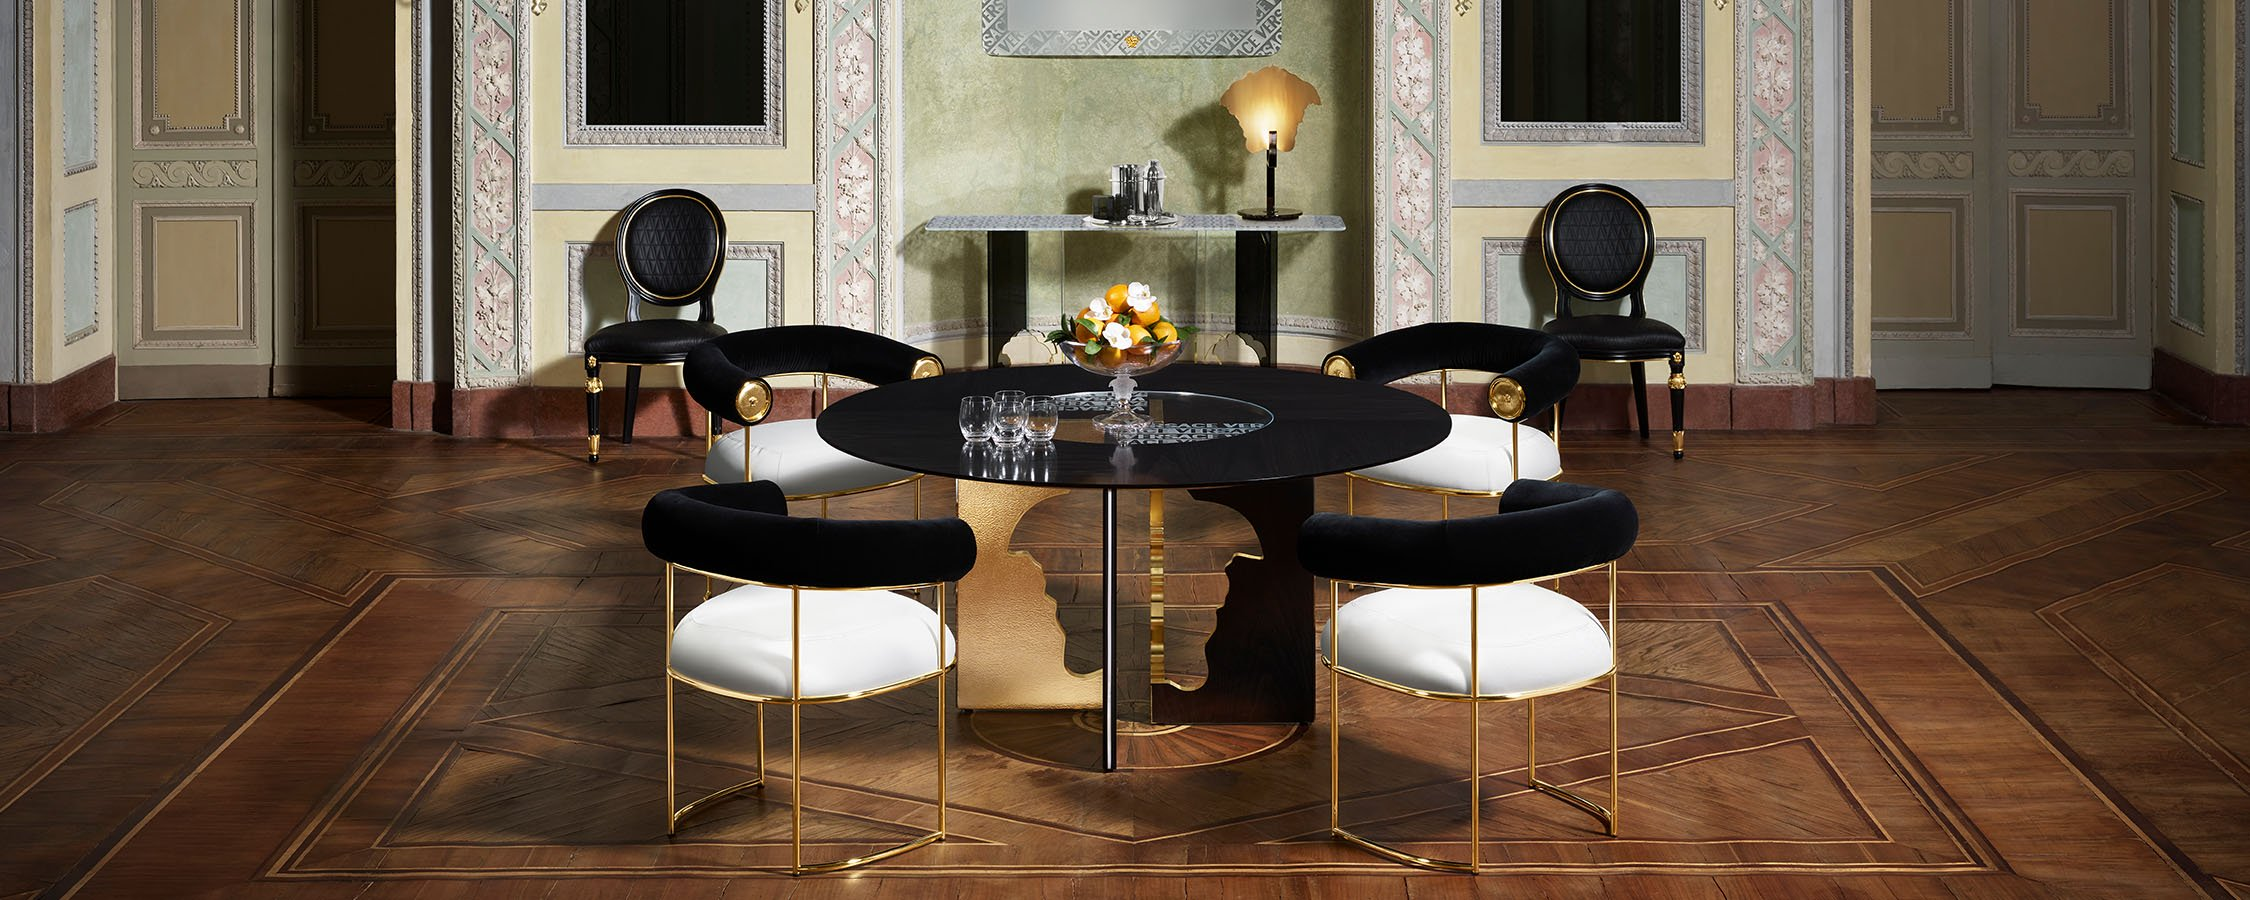 Get to Know Versace Home's New Collection